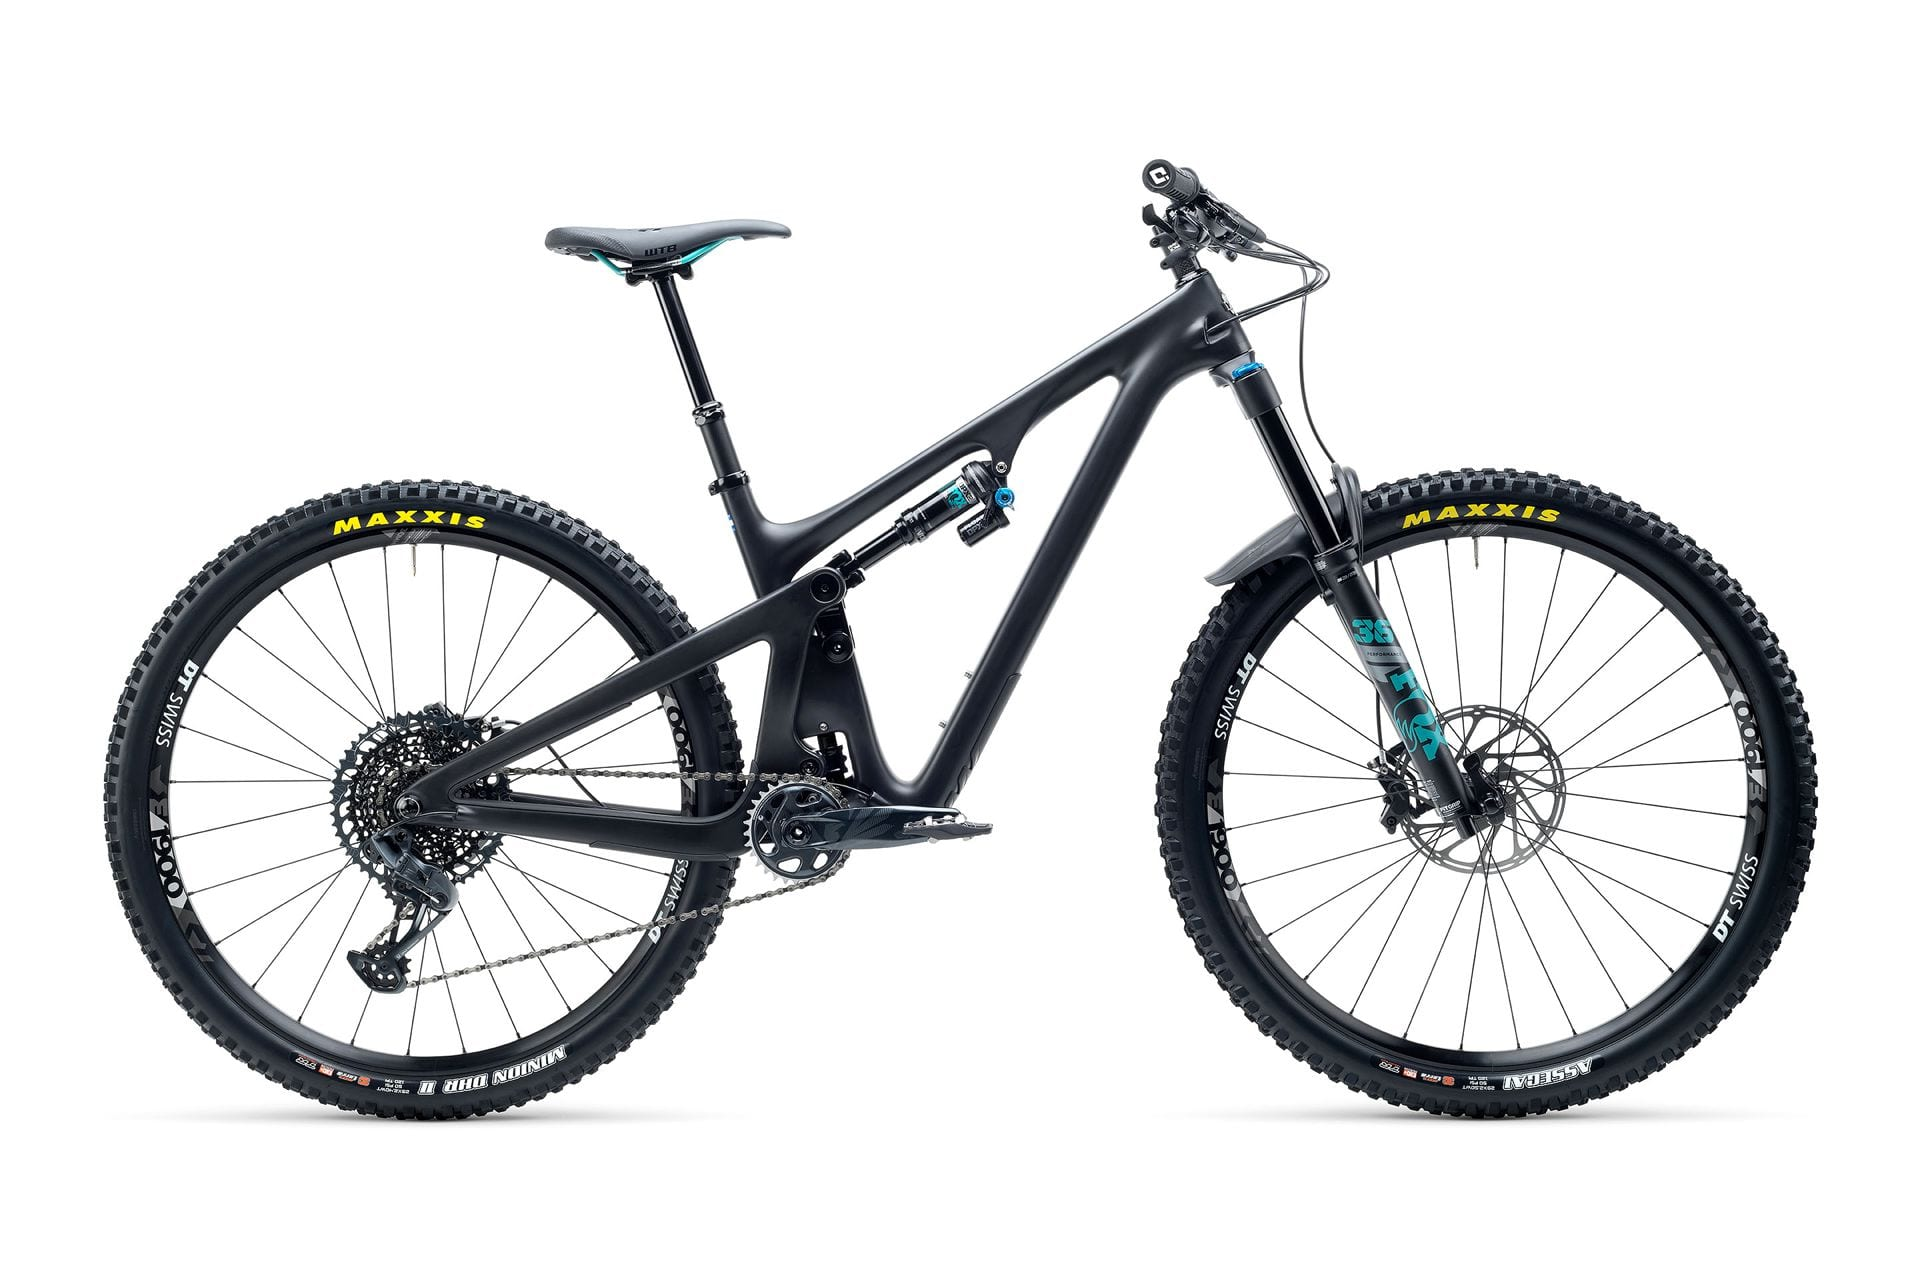 Yeti SB130 Lunch Ride rental in Whistler BC